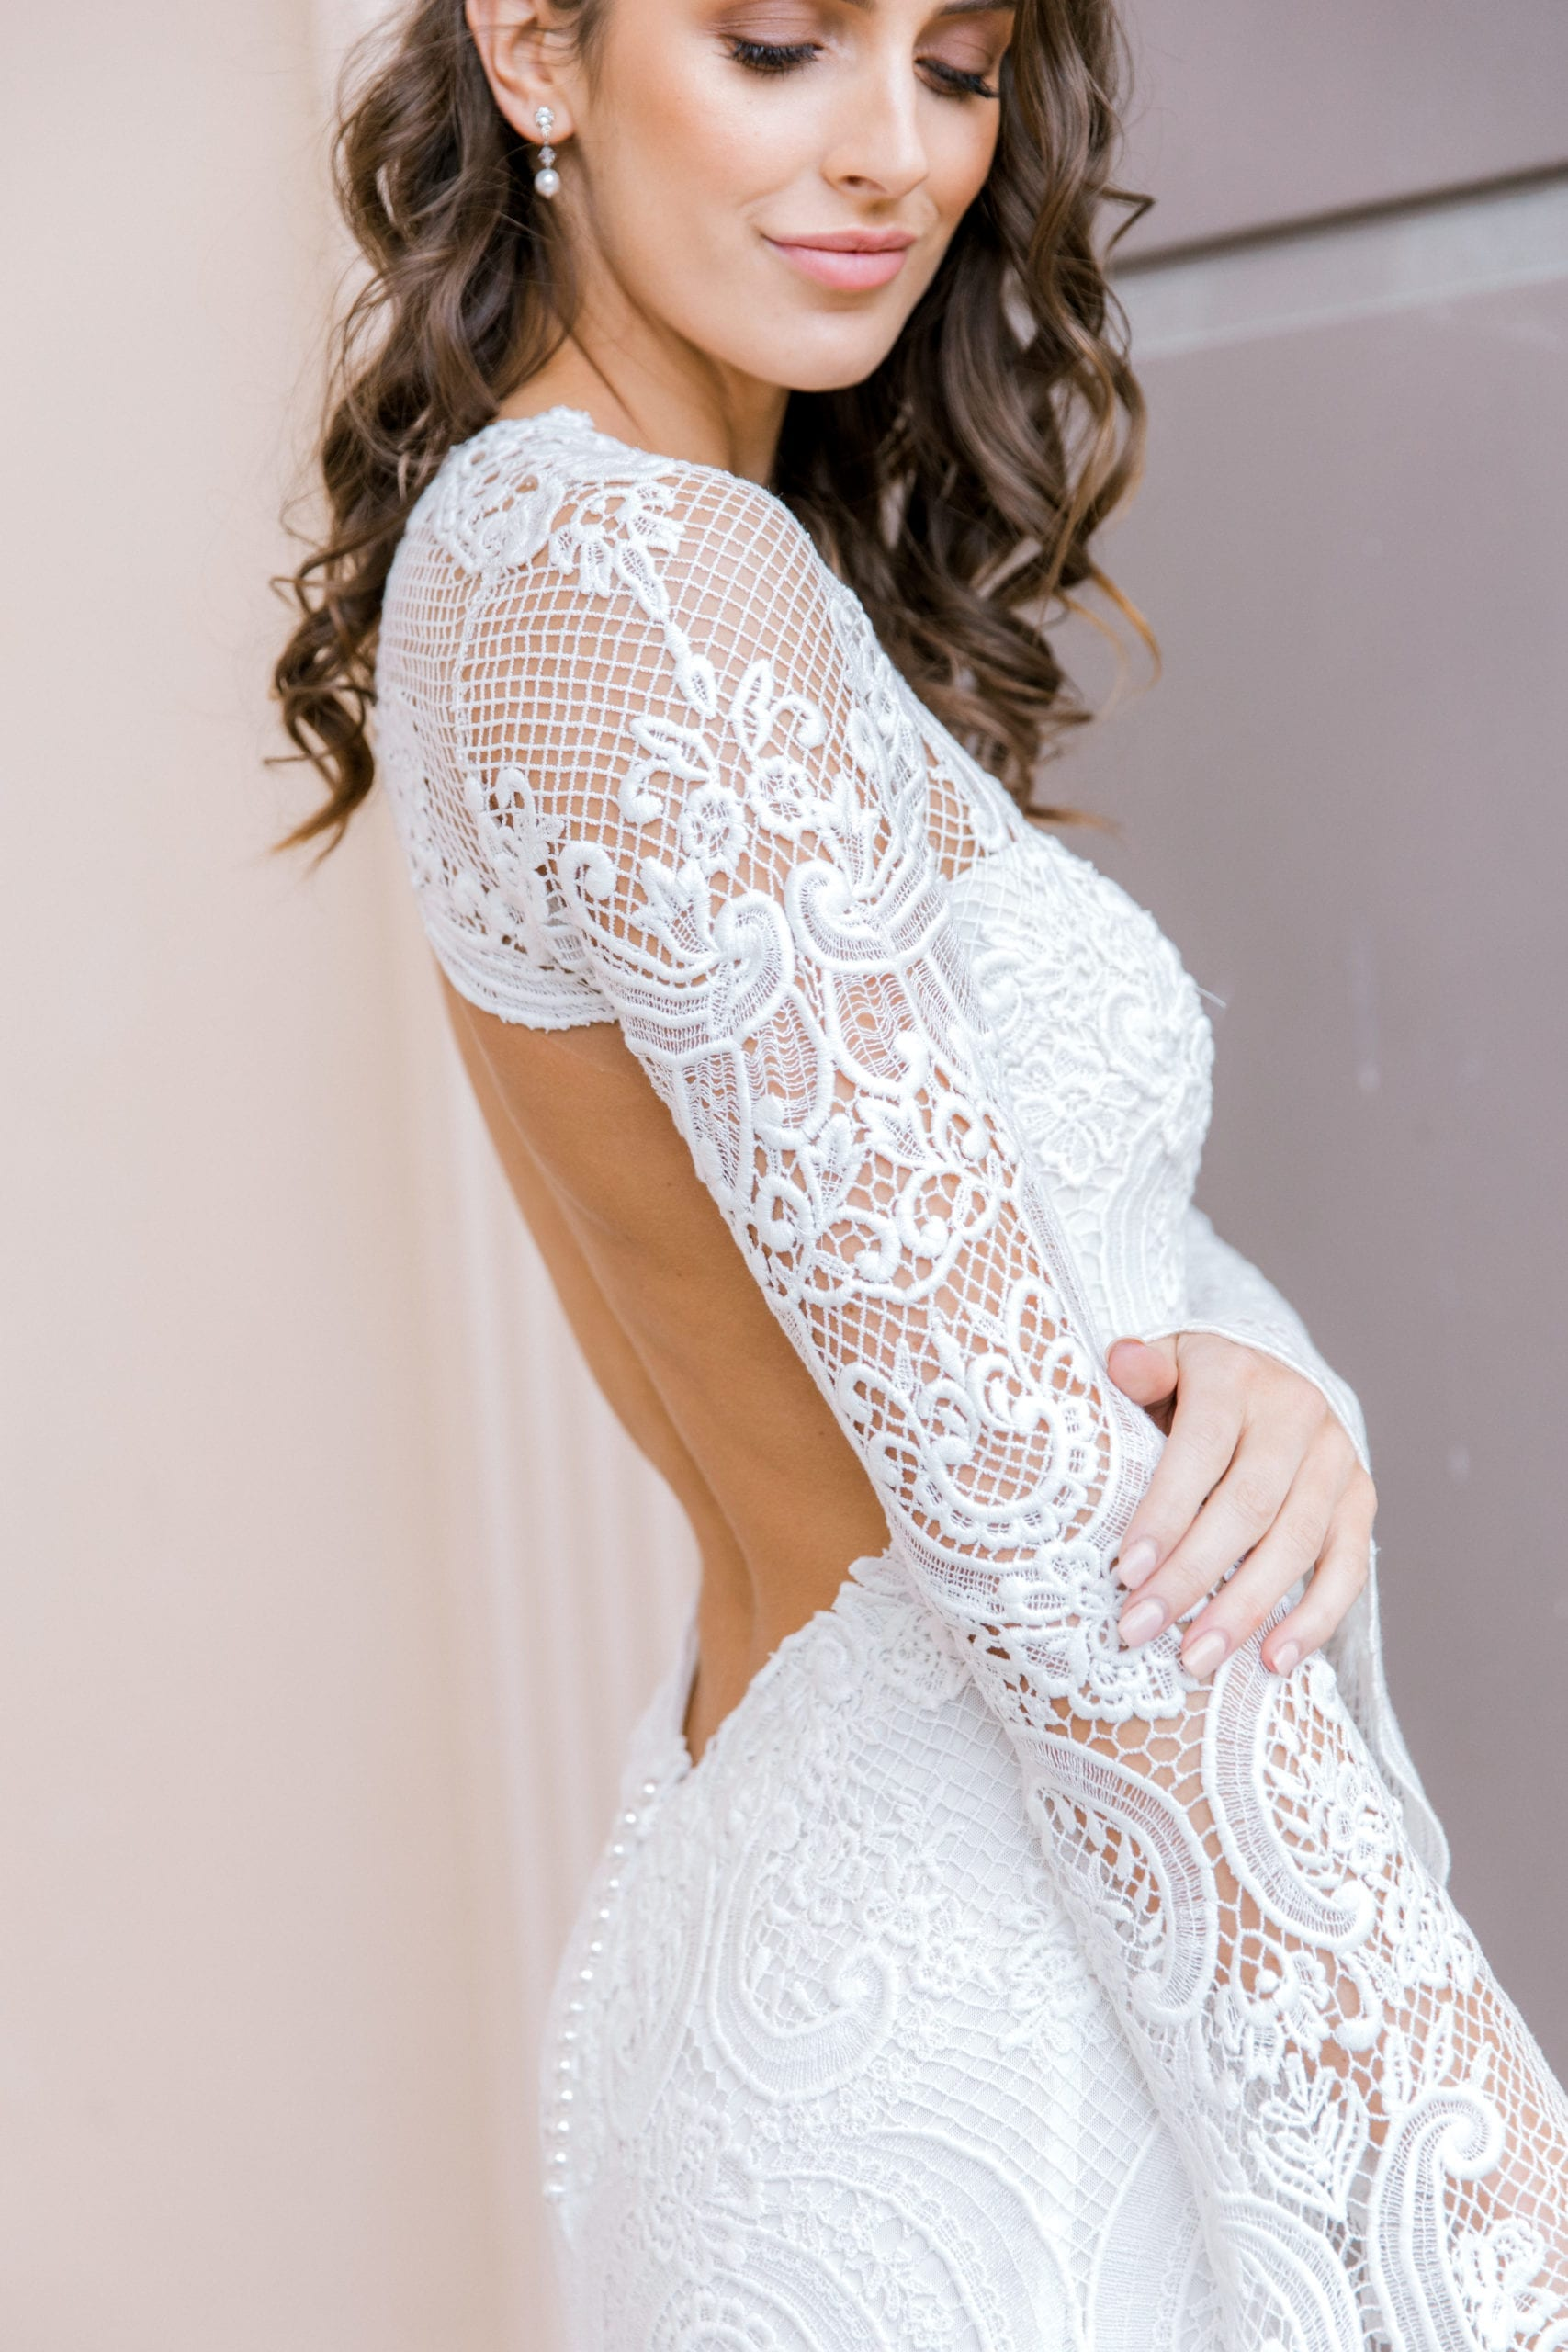 Model wearing Vinka Design Sabine Wedding Dress, a French Crochet Lace Wedding Gown close up showing low back